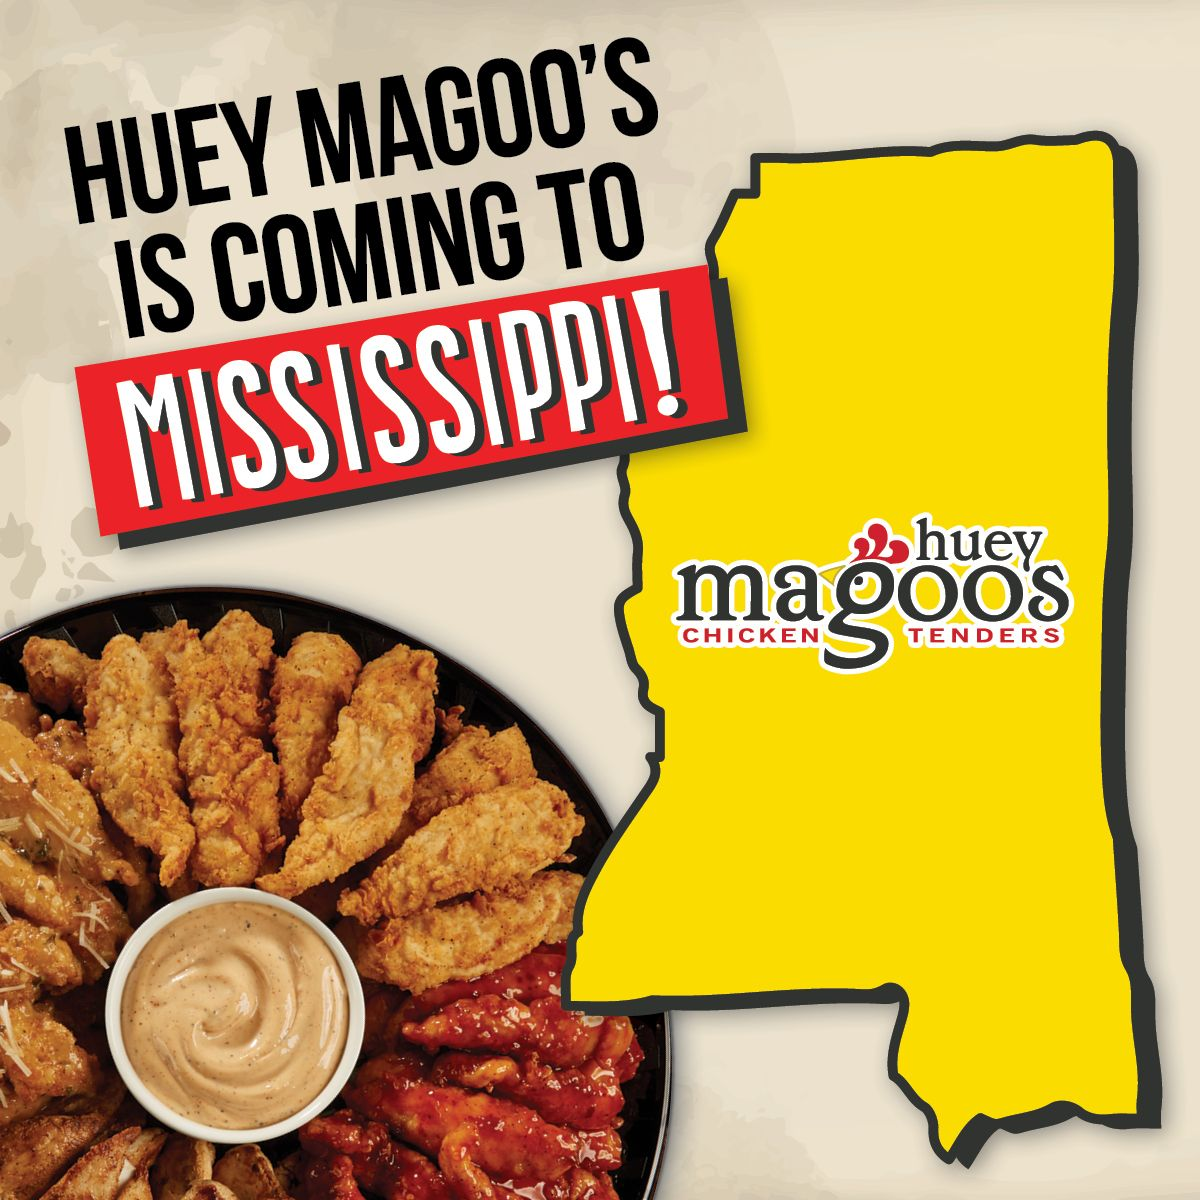 Huey Magoo's Chicken Tenders Announce Expansion To Mississippi